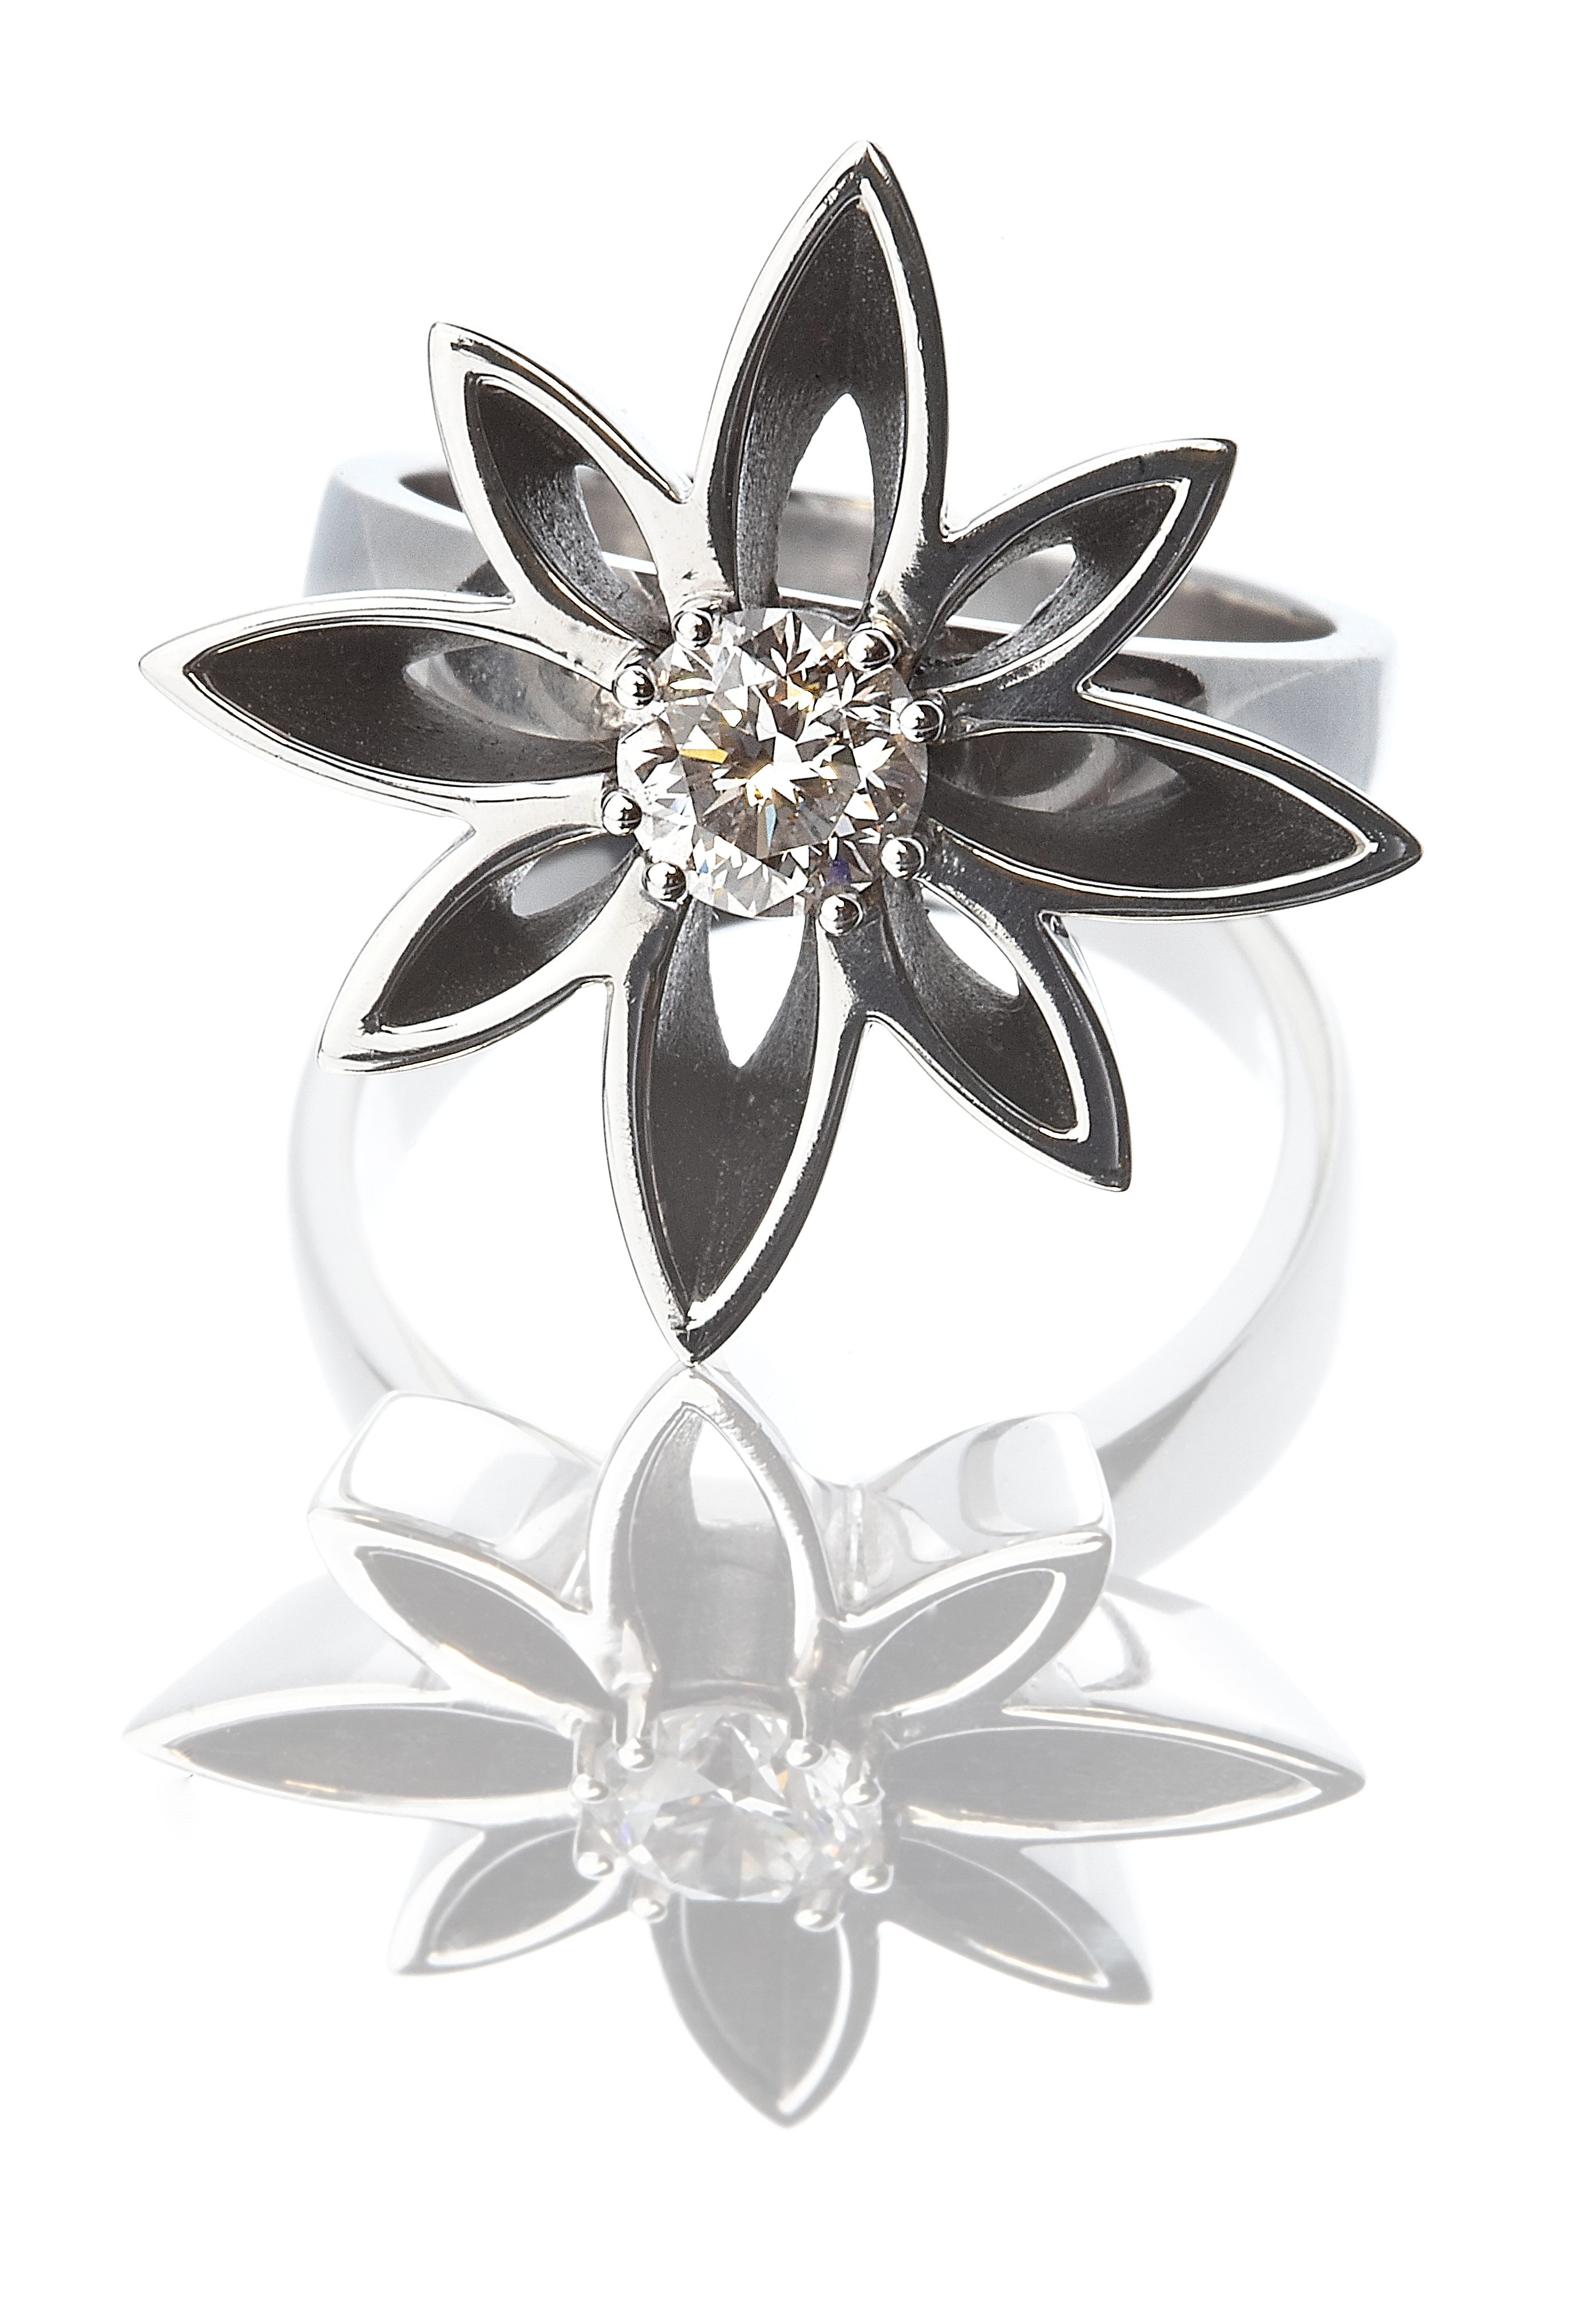 WYLDE FLOWER DIAMOND® AT THE ROYAL CRESCENT HOTEL